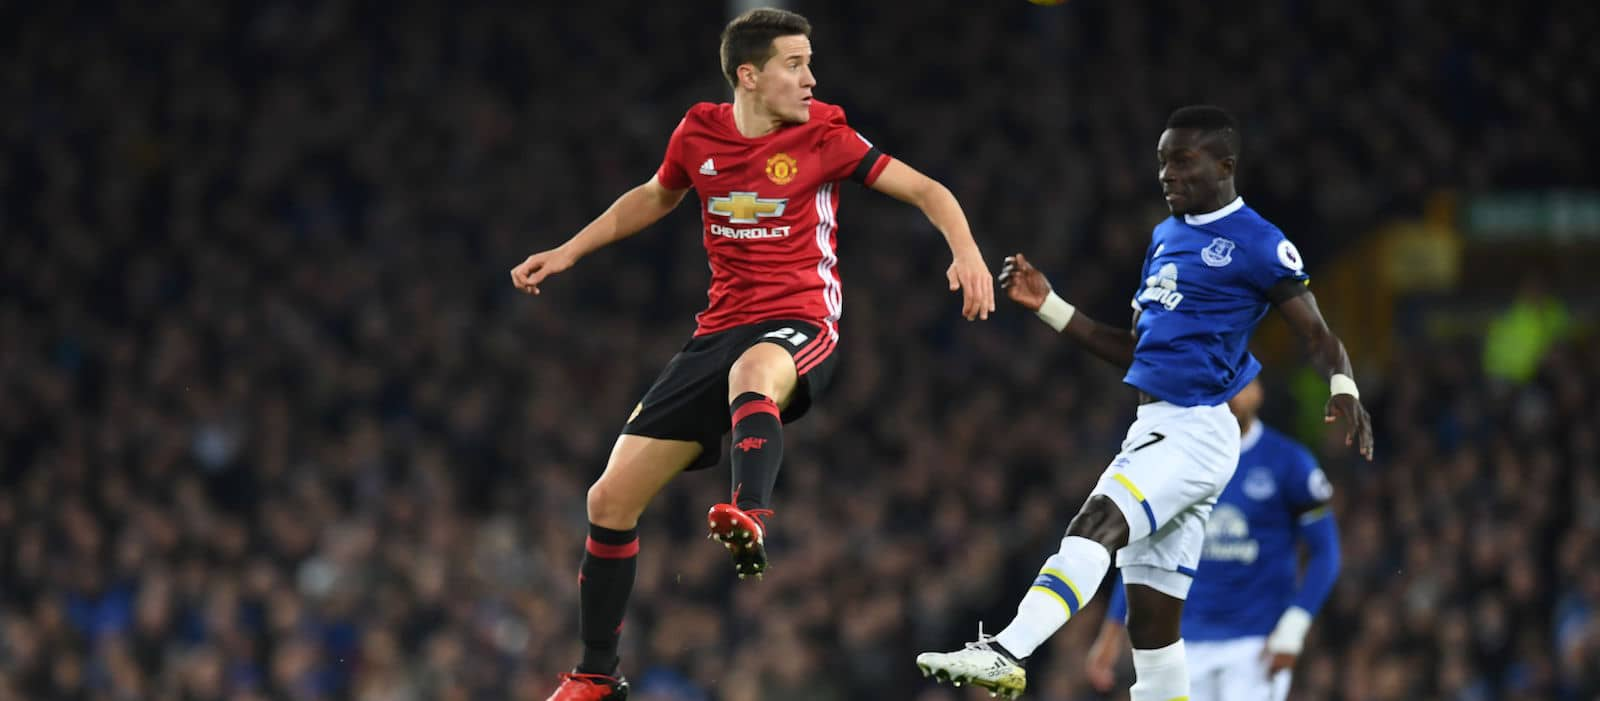 Ander Herrera produces powerful performance against West Ham